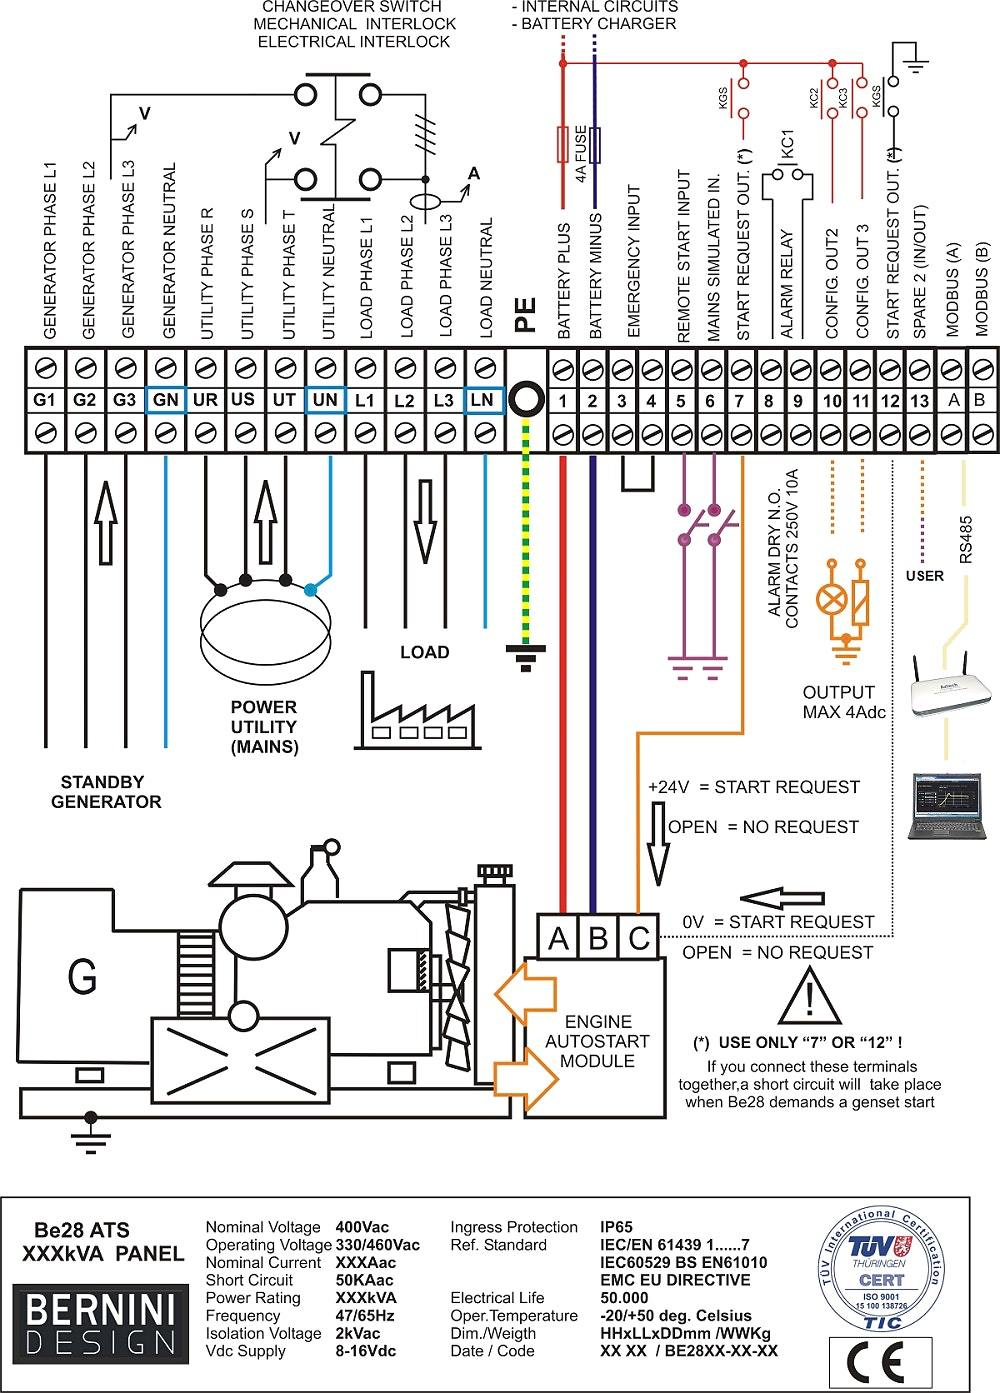 Transfer Switch Schematic | Wiring Diagram on